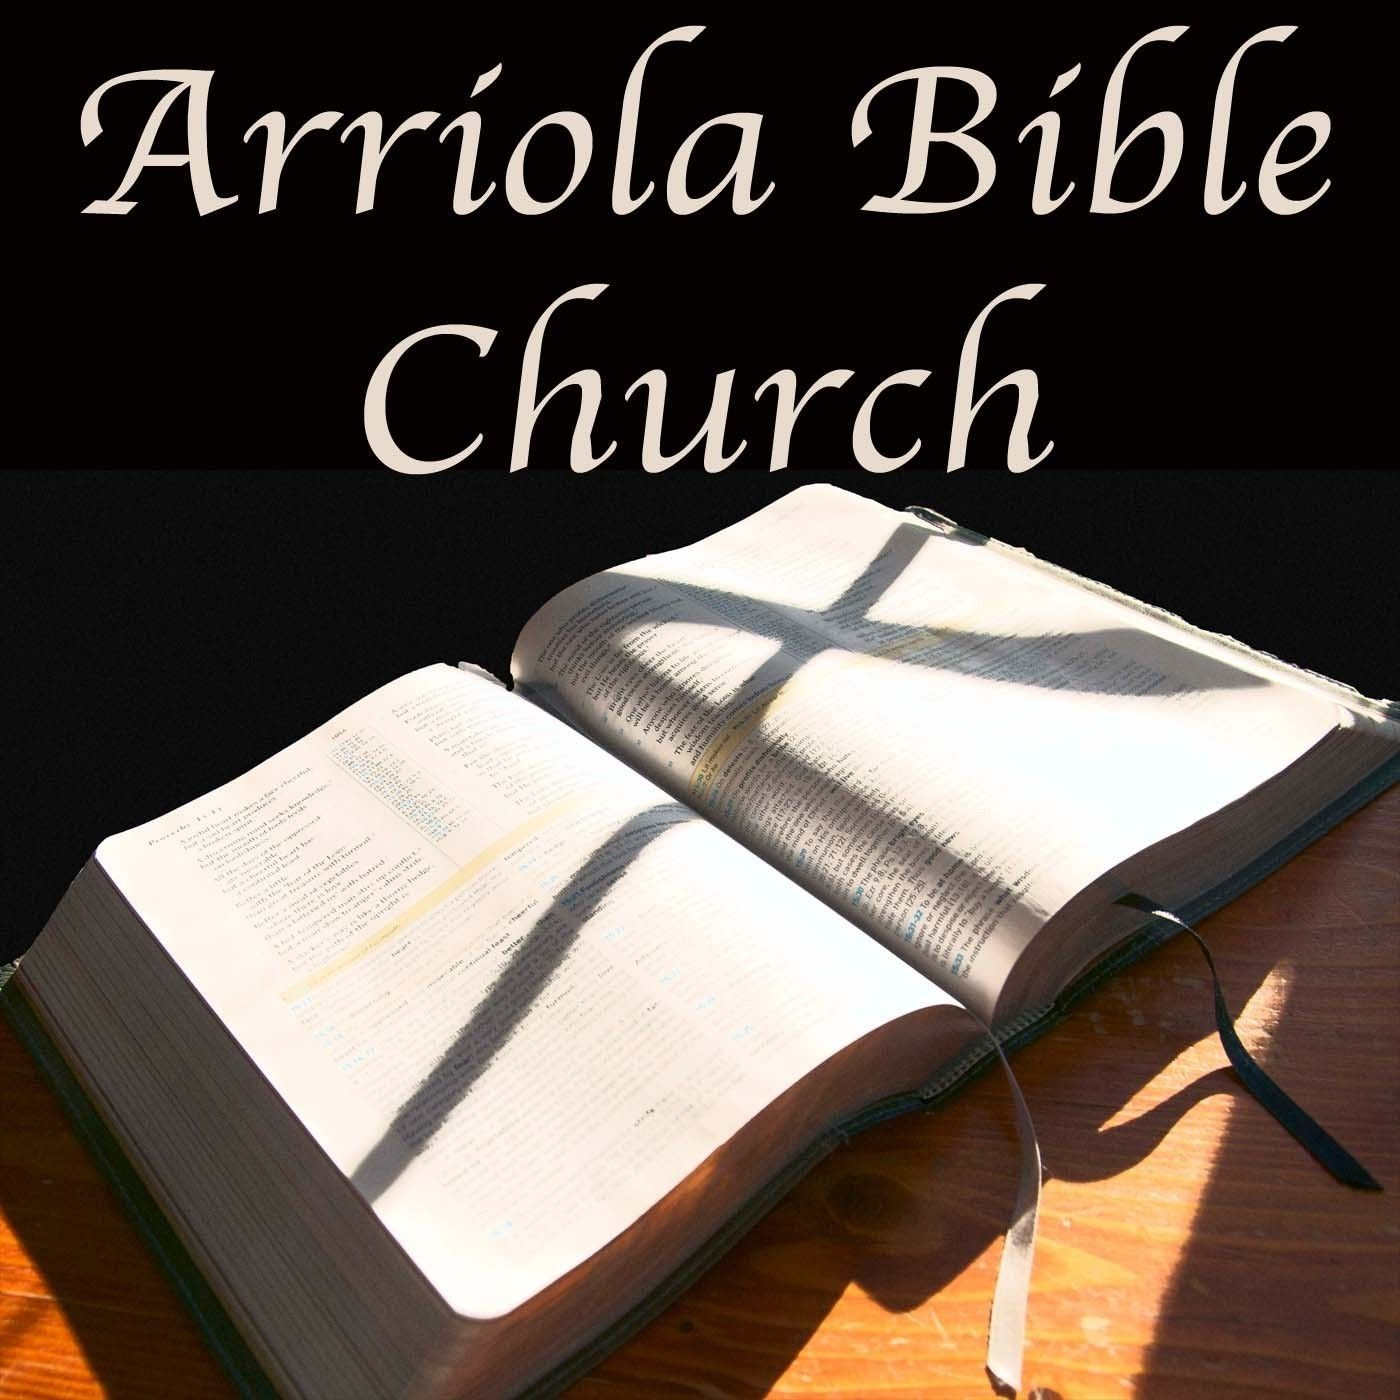 Arriola Bible Church